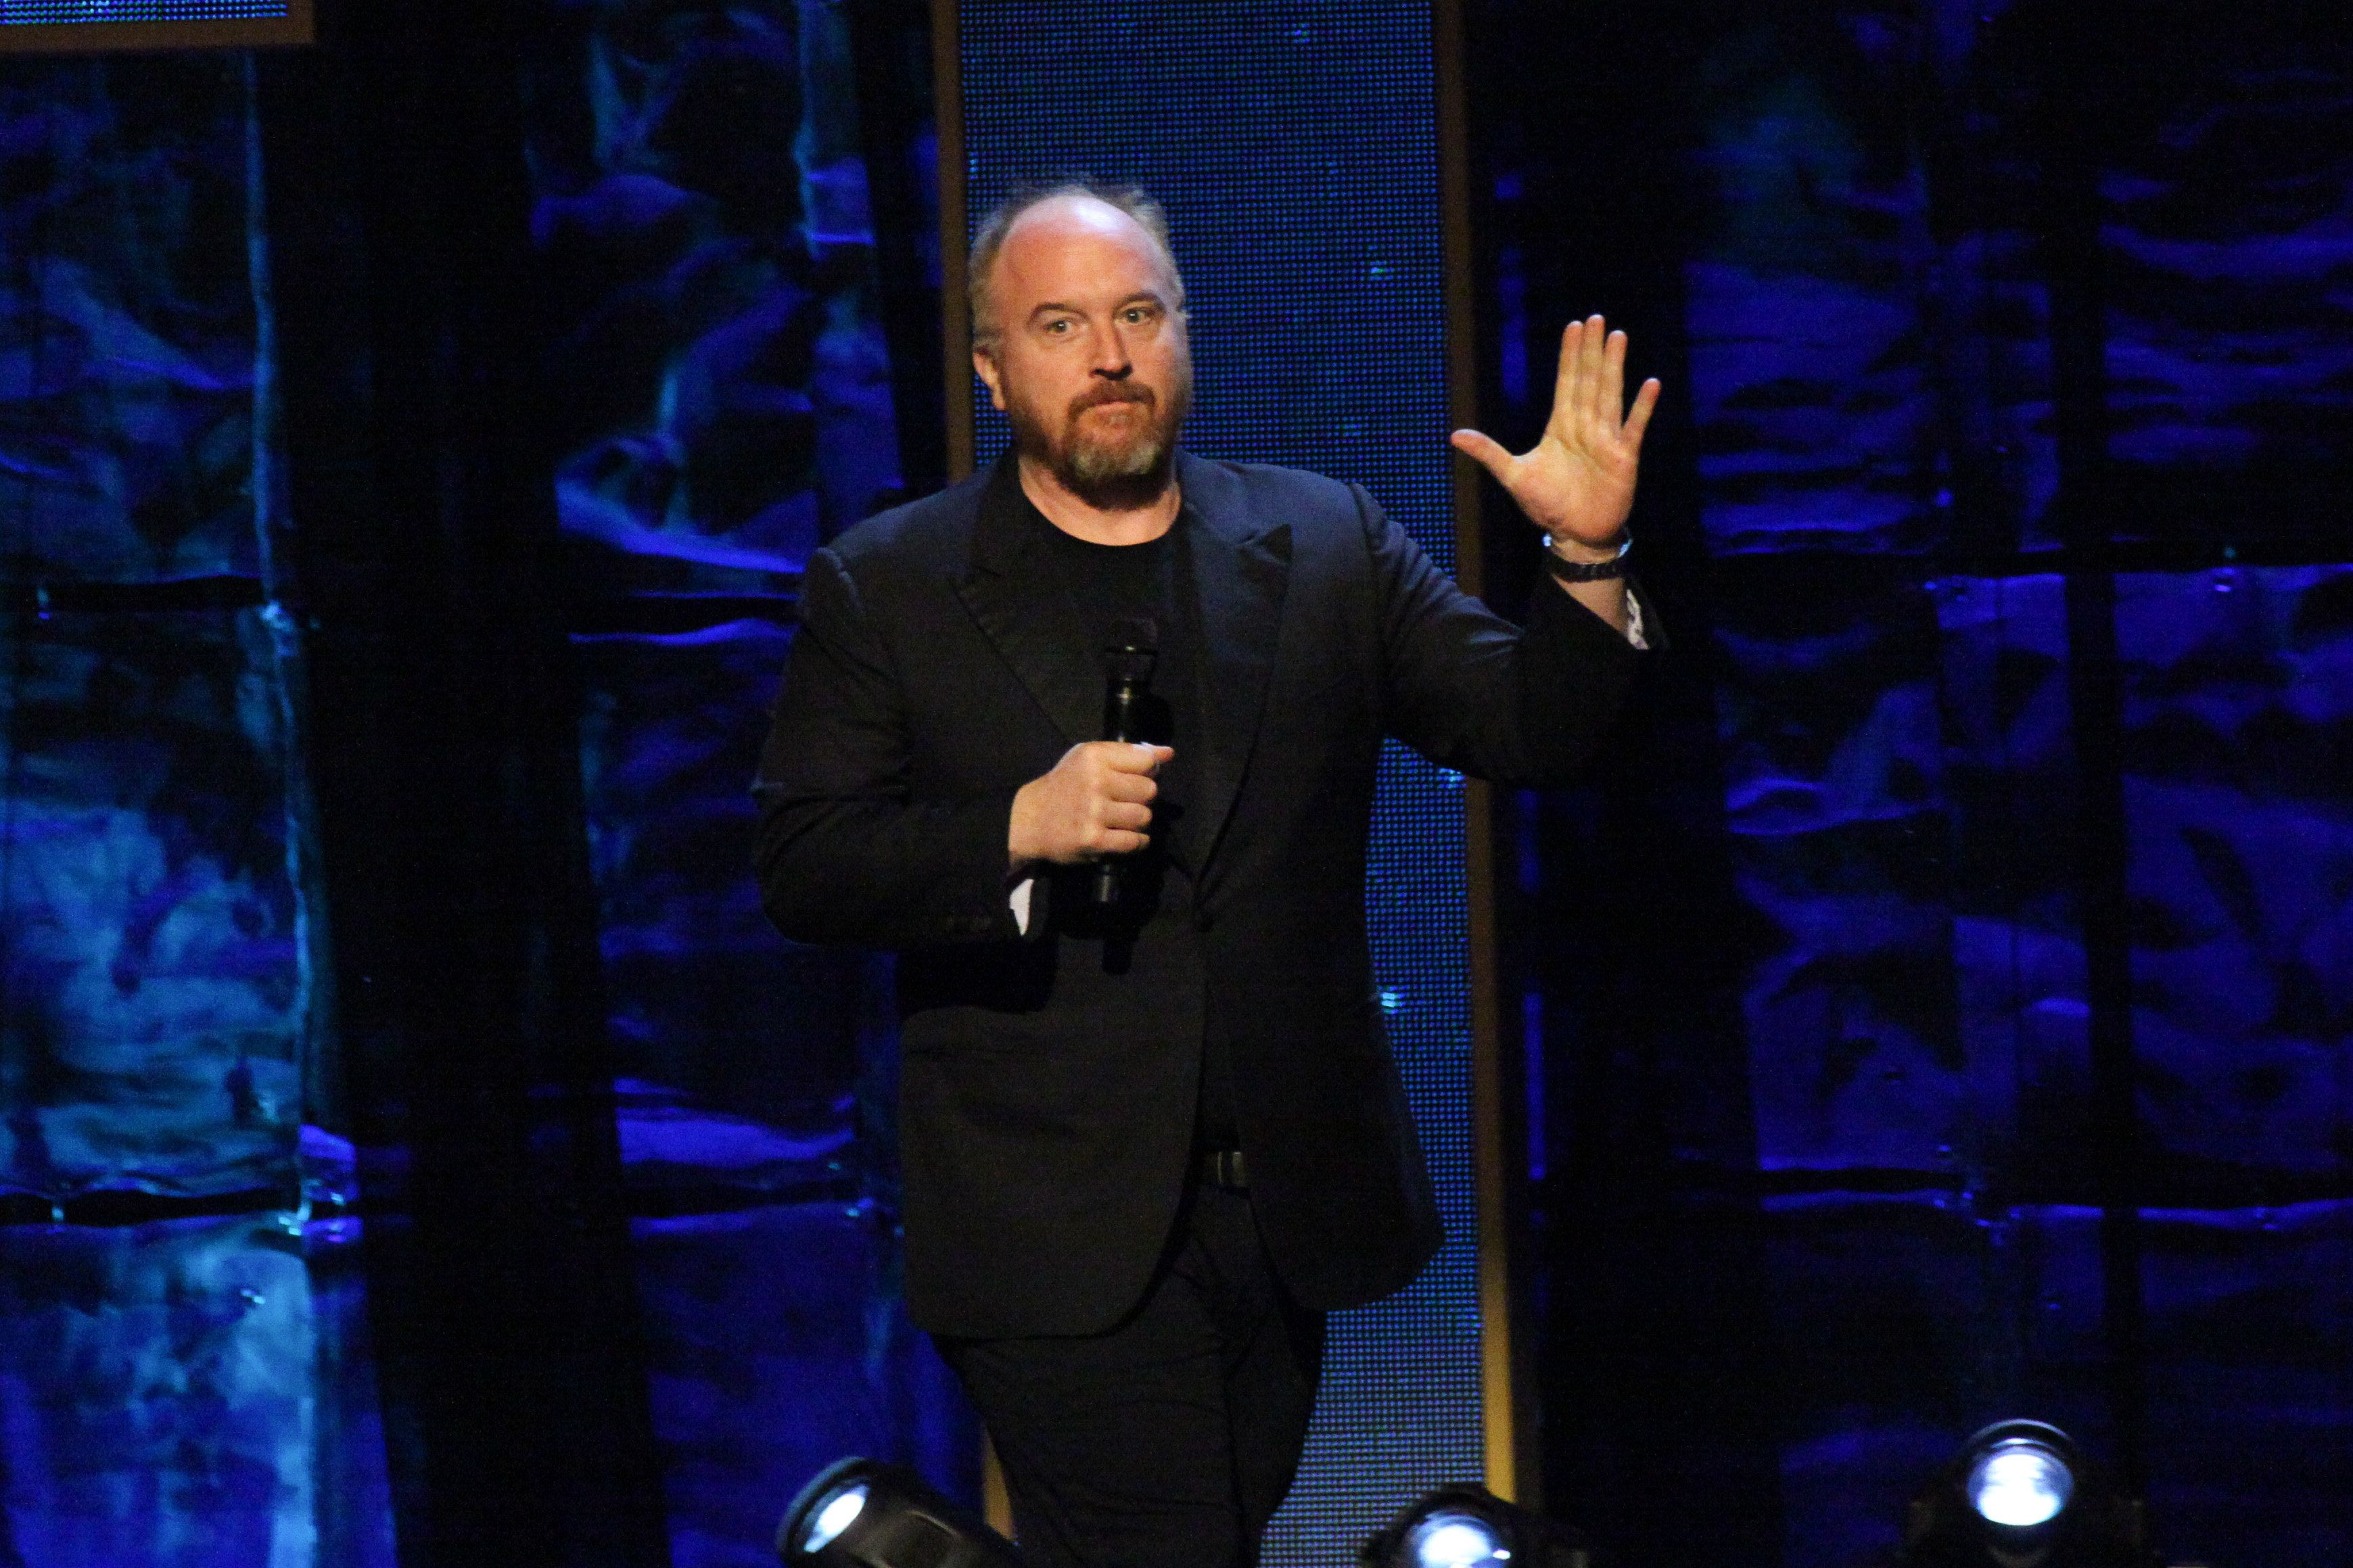 Louis C.K. Jokes About Sexual Harassment In New Set, Appears To Have Learned Nothing